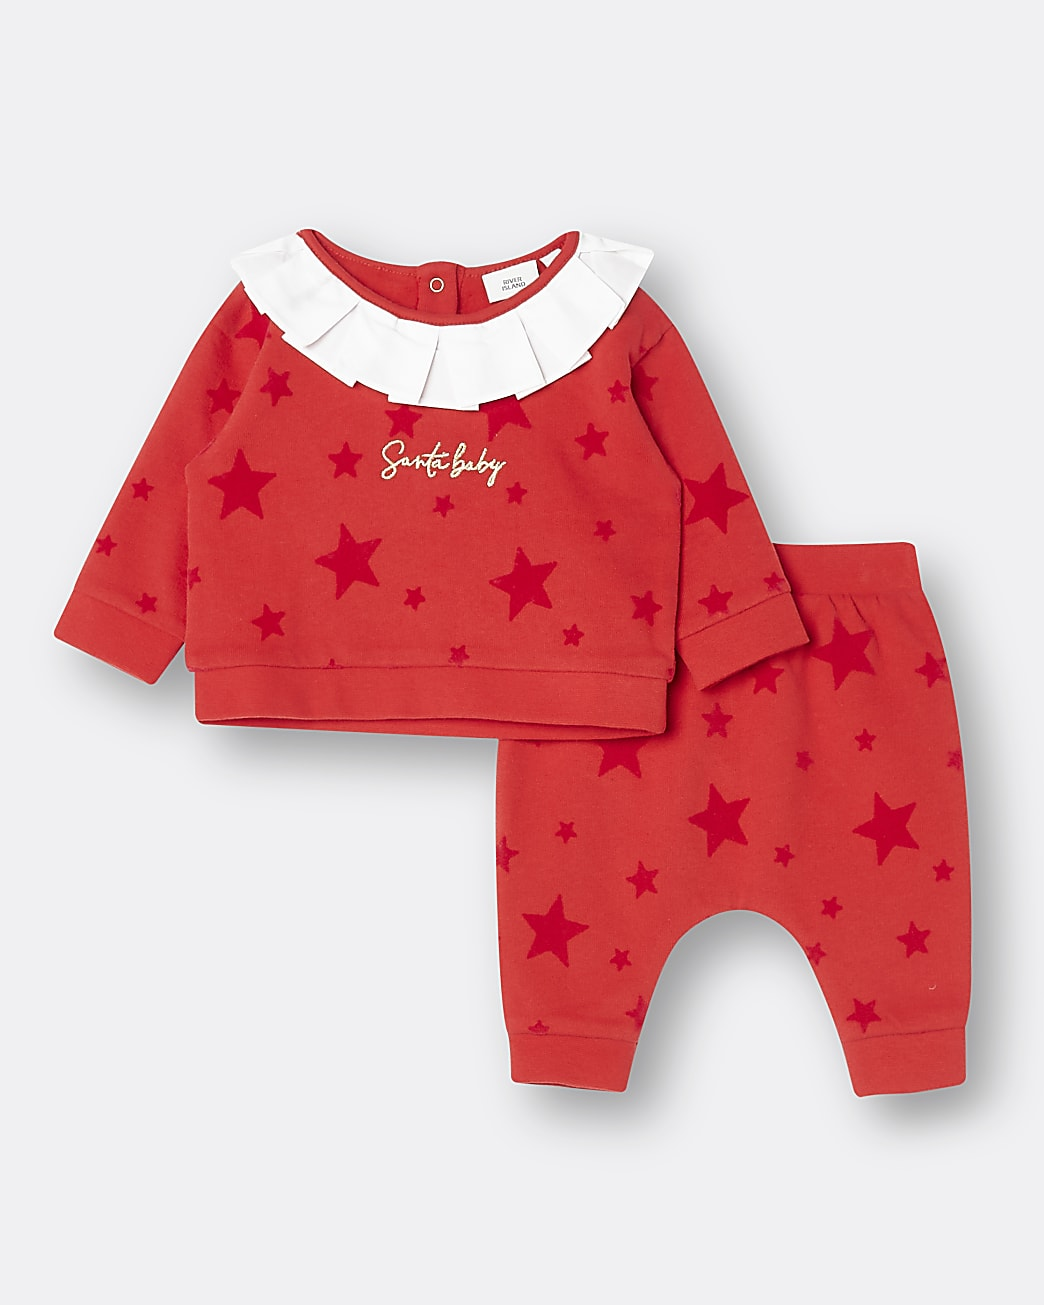 Baby girls red 'Santa Baby' star print outfit